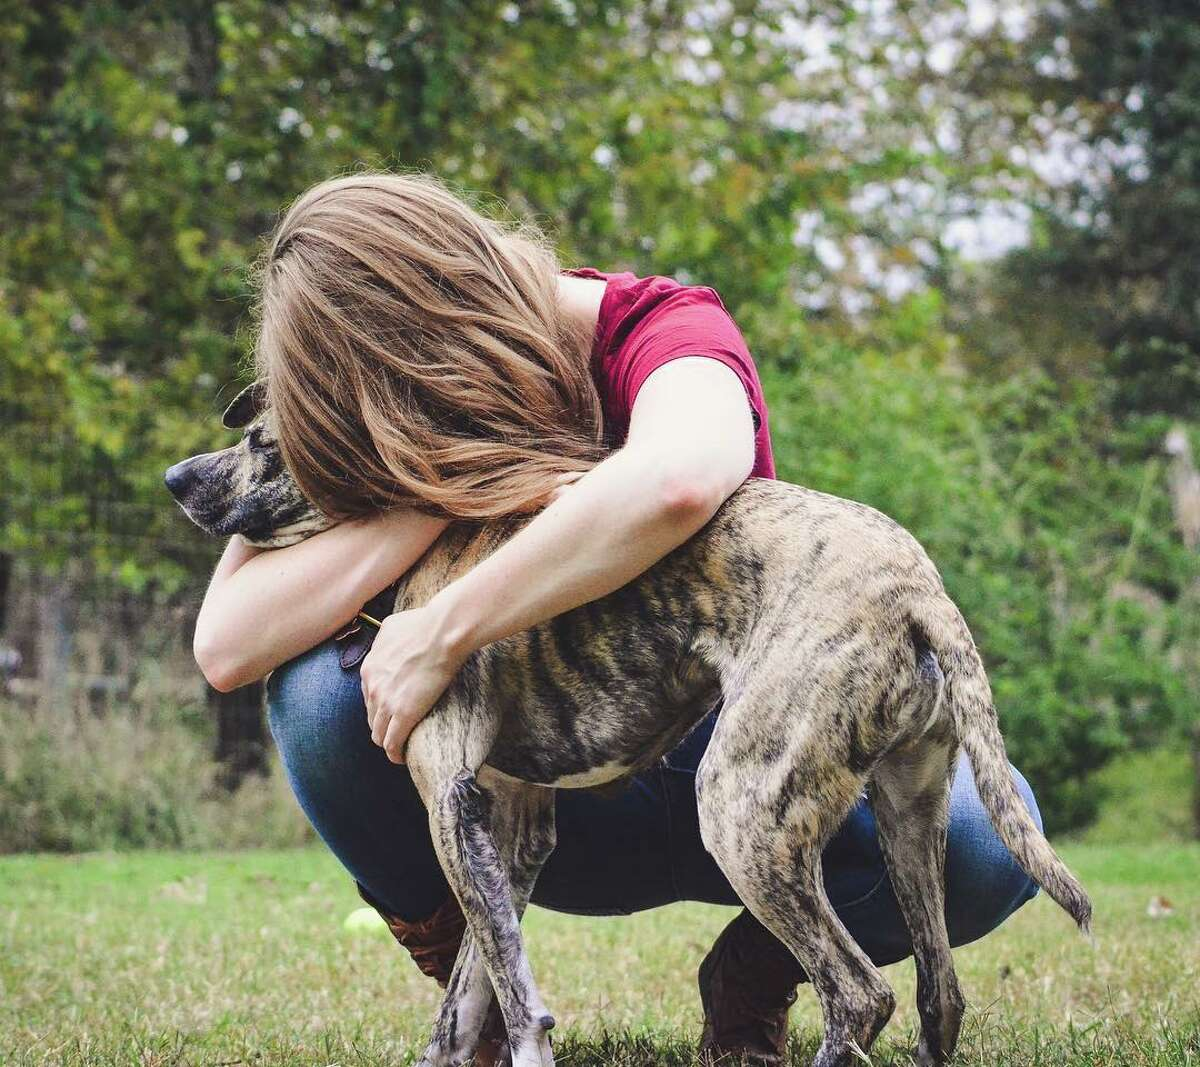 Veterinary doctor Danielle Boyd fell in love with Squish at first sight in Ohio in June 2016, and helped save him from possible euthanasia. Though as the doggy saying, who rescued who?